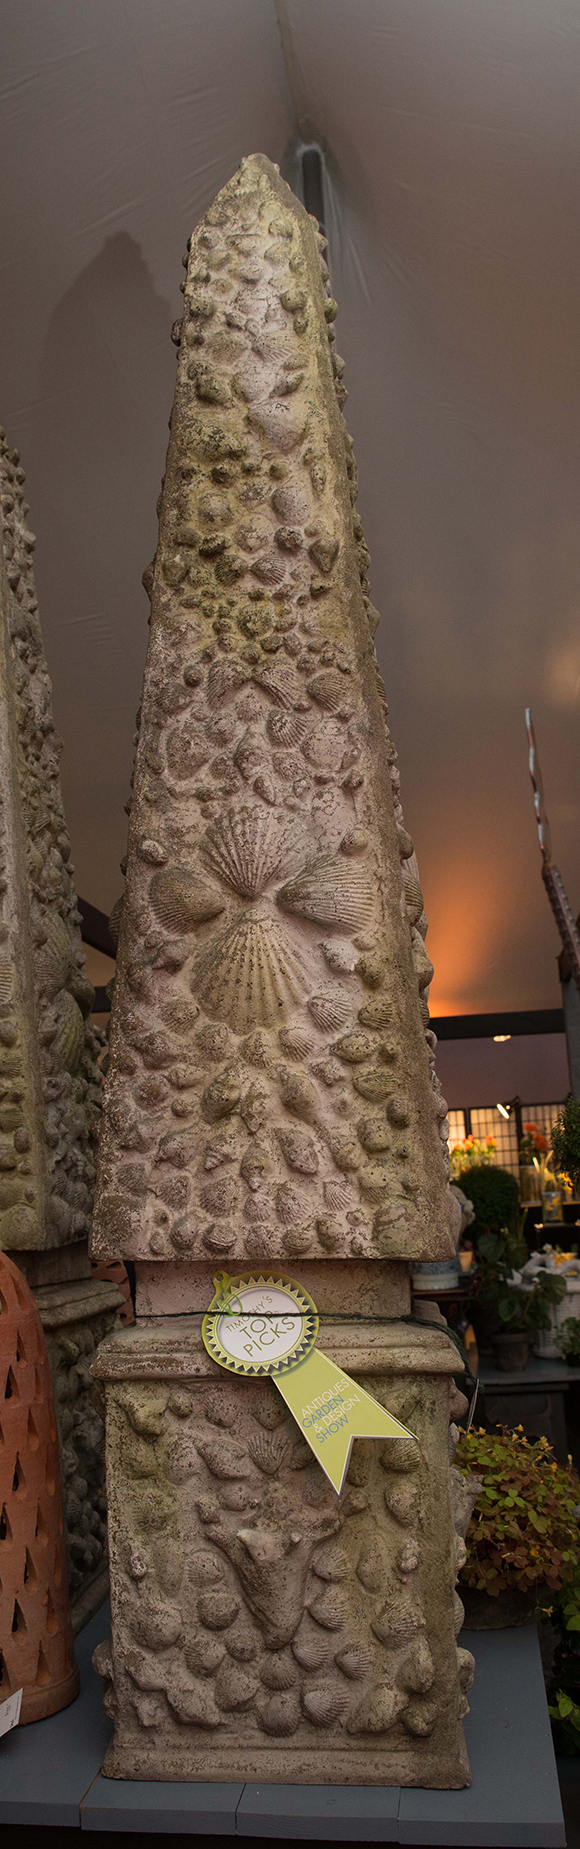 Booth #310, Craig Bergmann Landscape Design: A towering garden obelisk with raised shell motif.